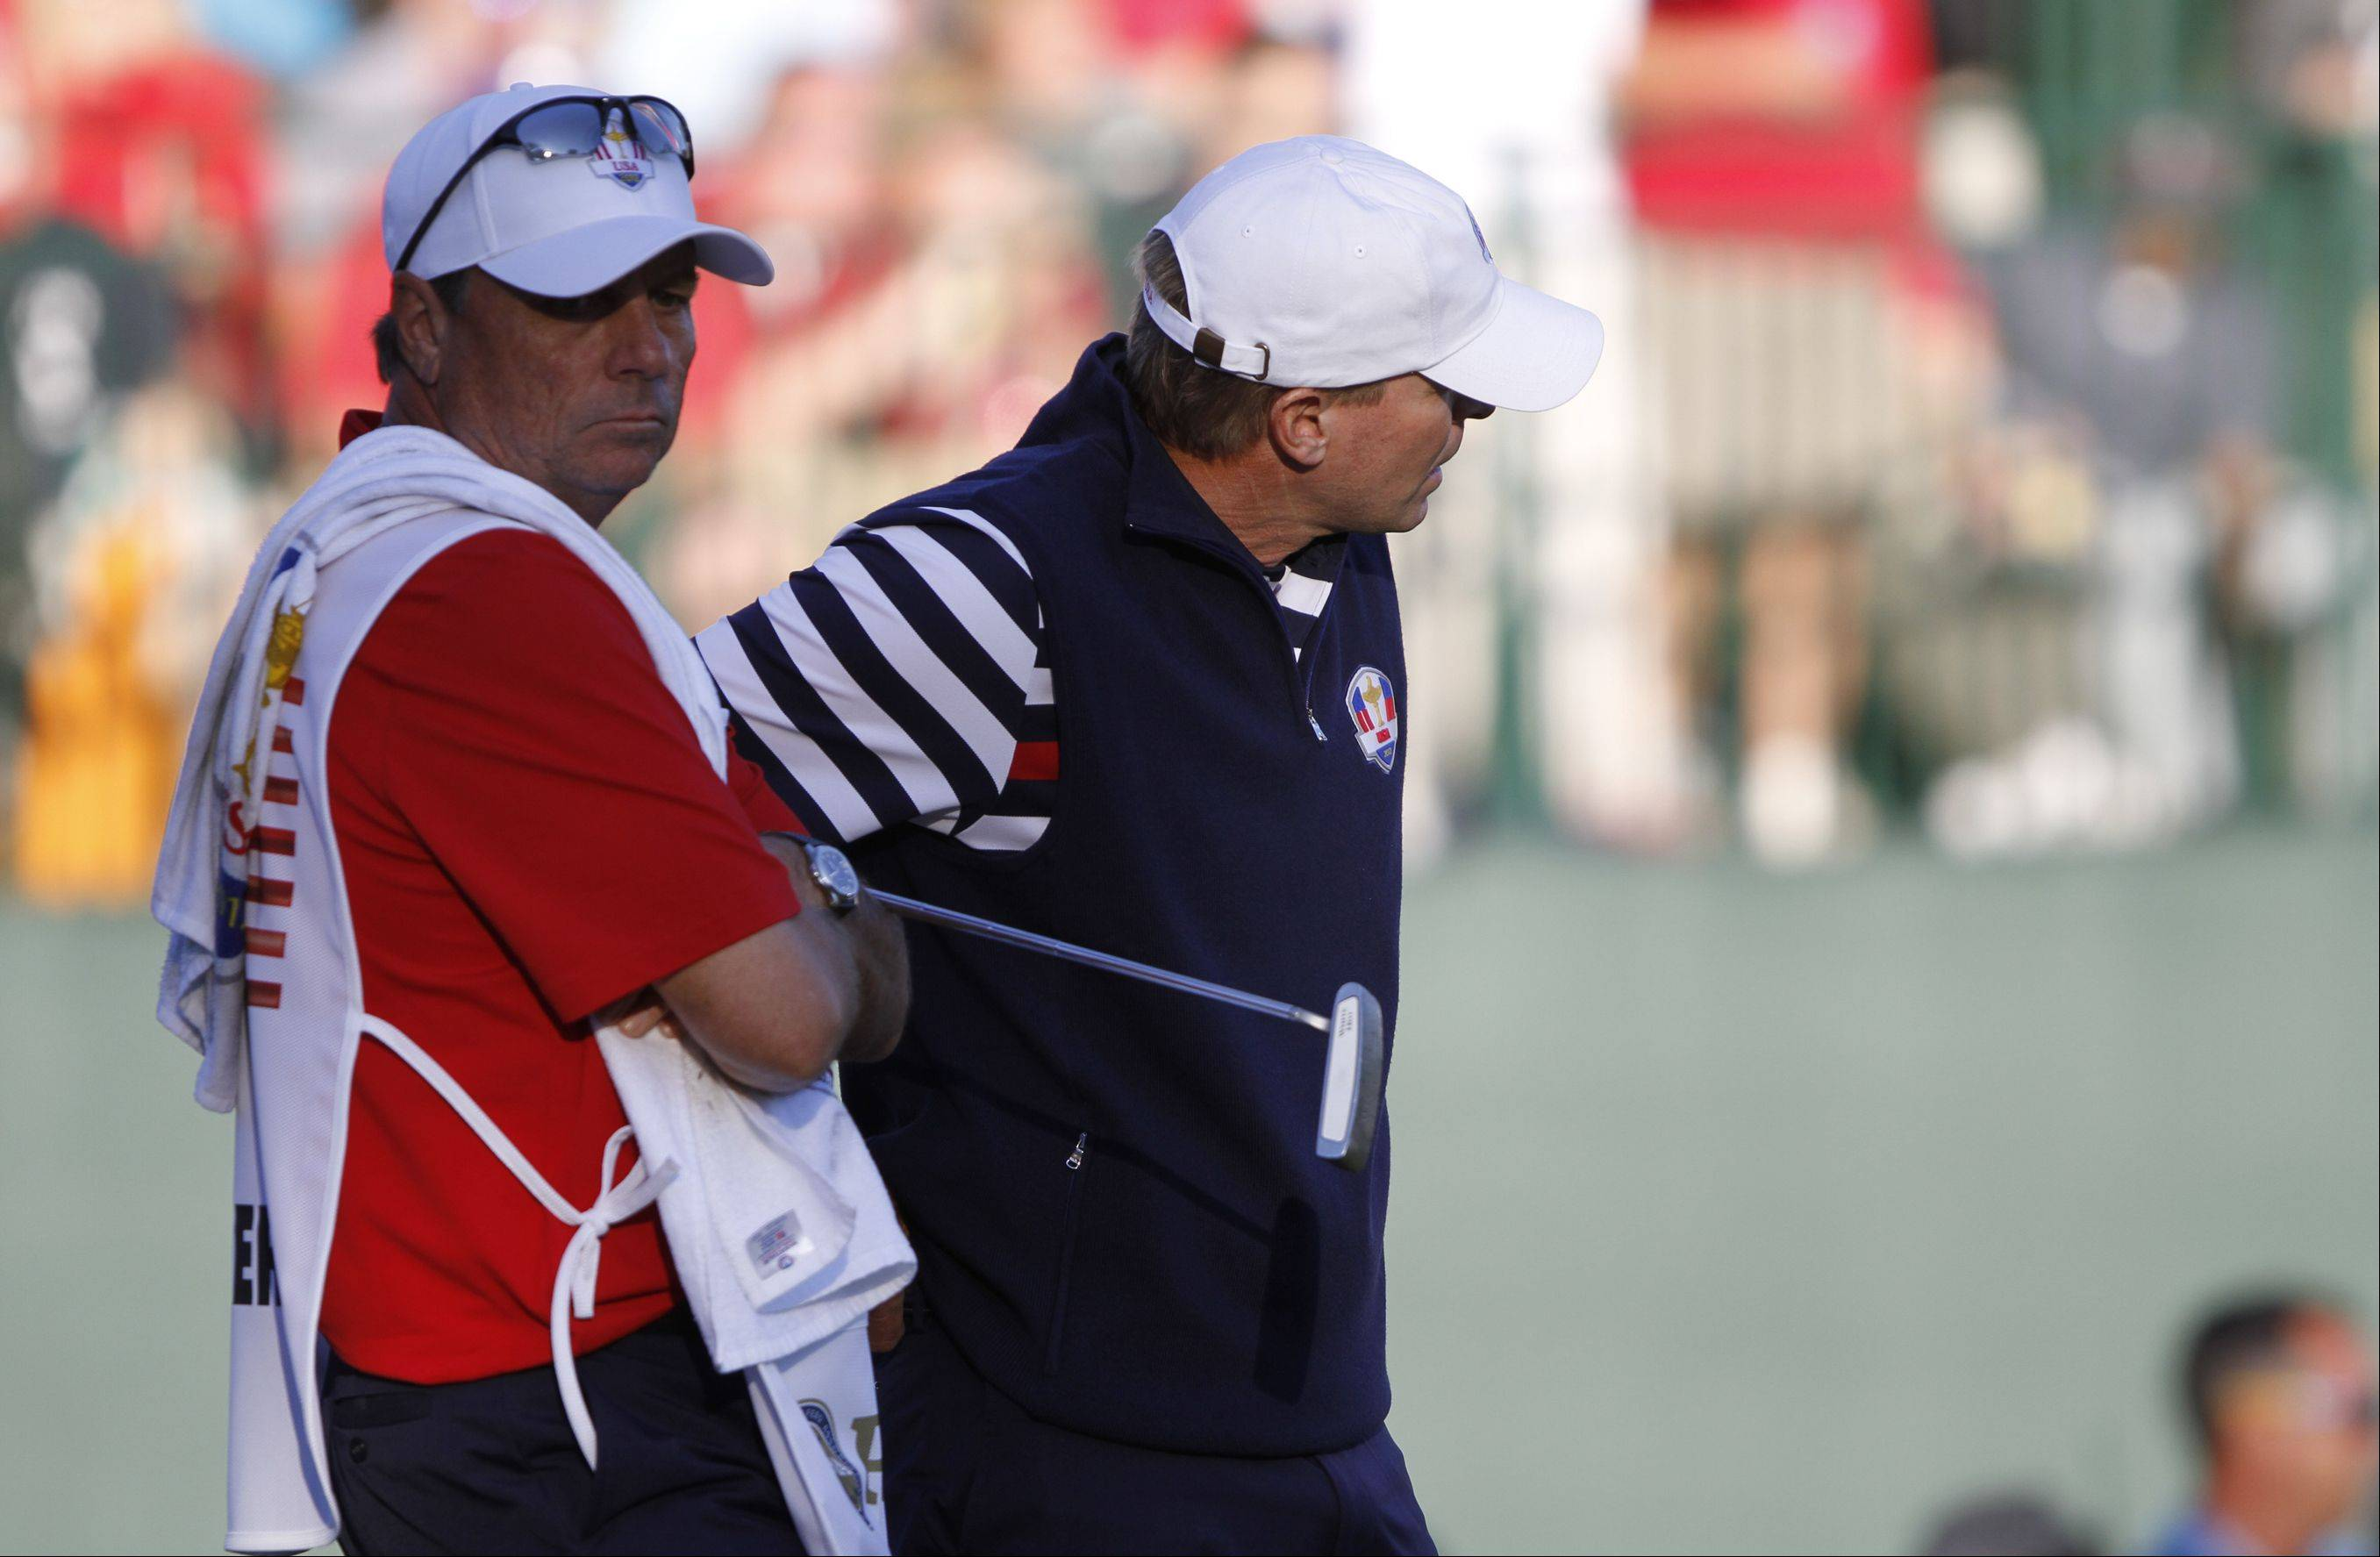 Steve Stricker and his caddie look glum after Stricker missed a putt on 18 that sealed the European victory Sunday during the final day of the 2012 Ryder Cup at Medinah Country Club.